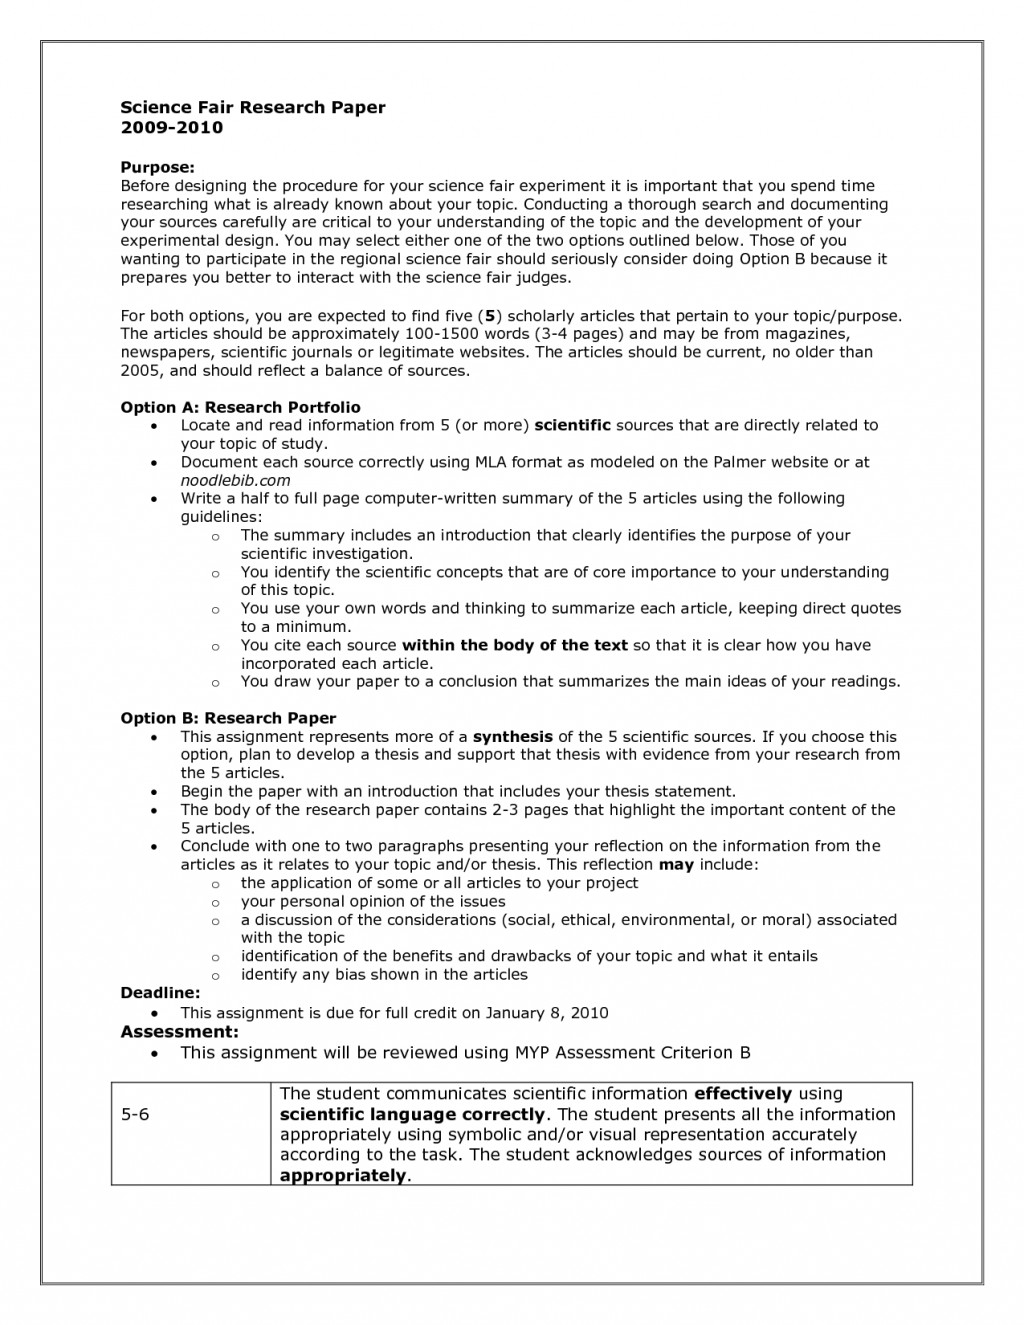 004 Best Photos Of Science Procedure Template Fair Essay Example L Research Paper What Is The Purpose Impressive A Conducting Critiquing Process Writing Large